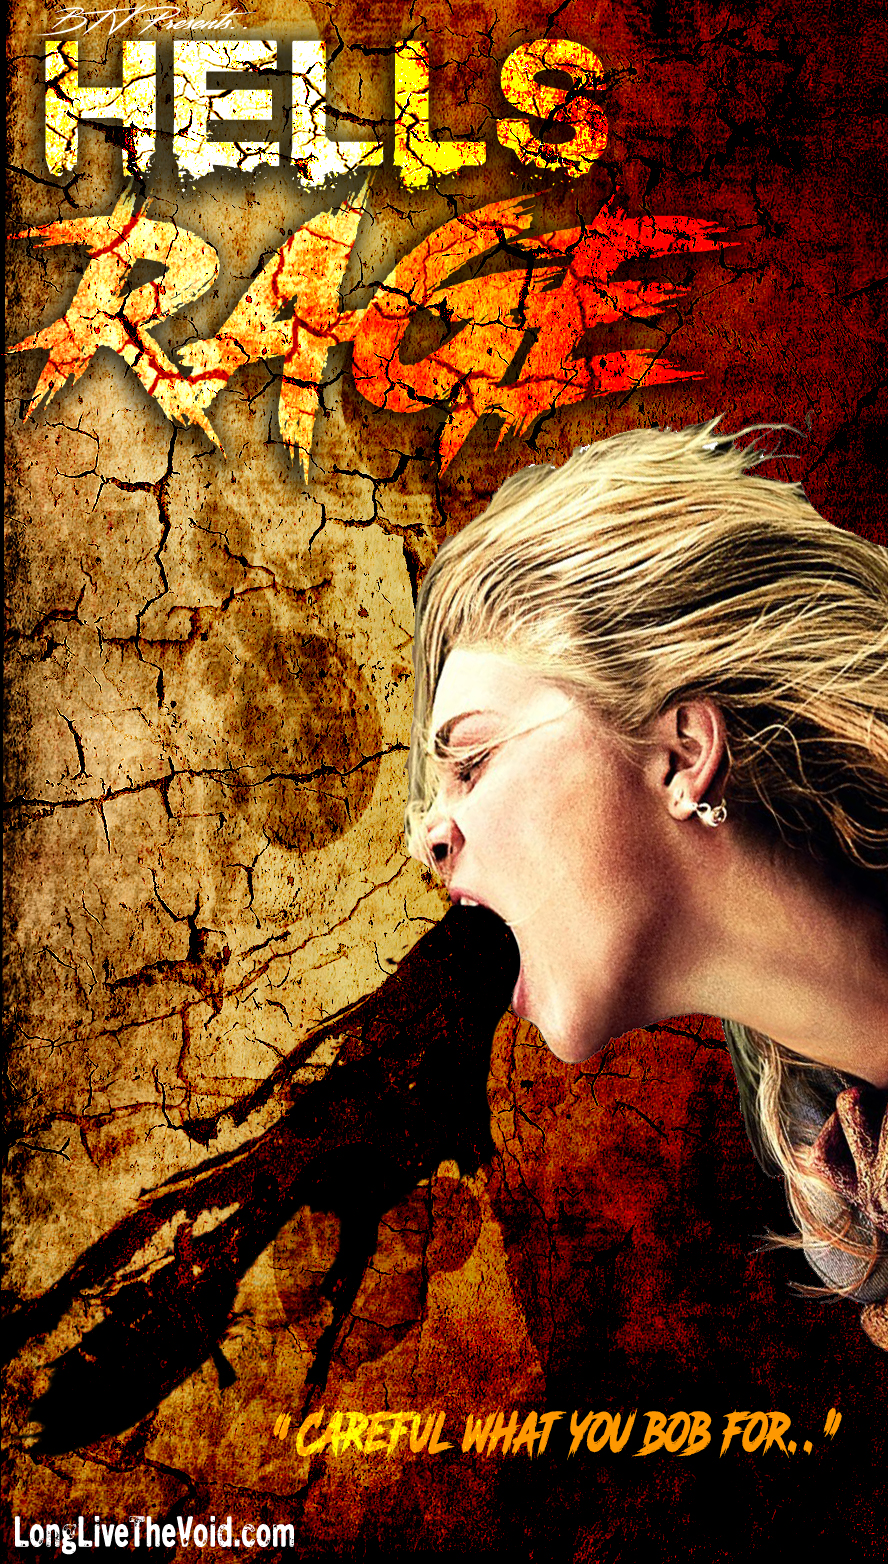 NEW-Hells-Rage-FULL-COVER.jpg